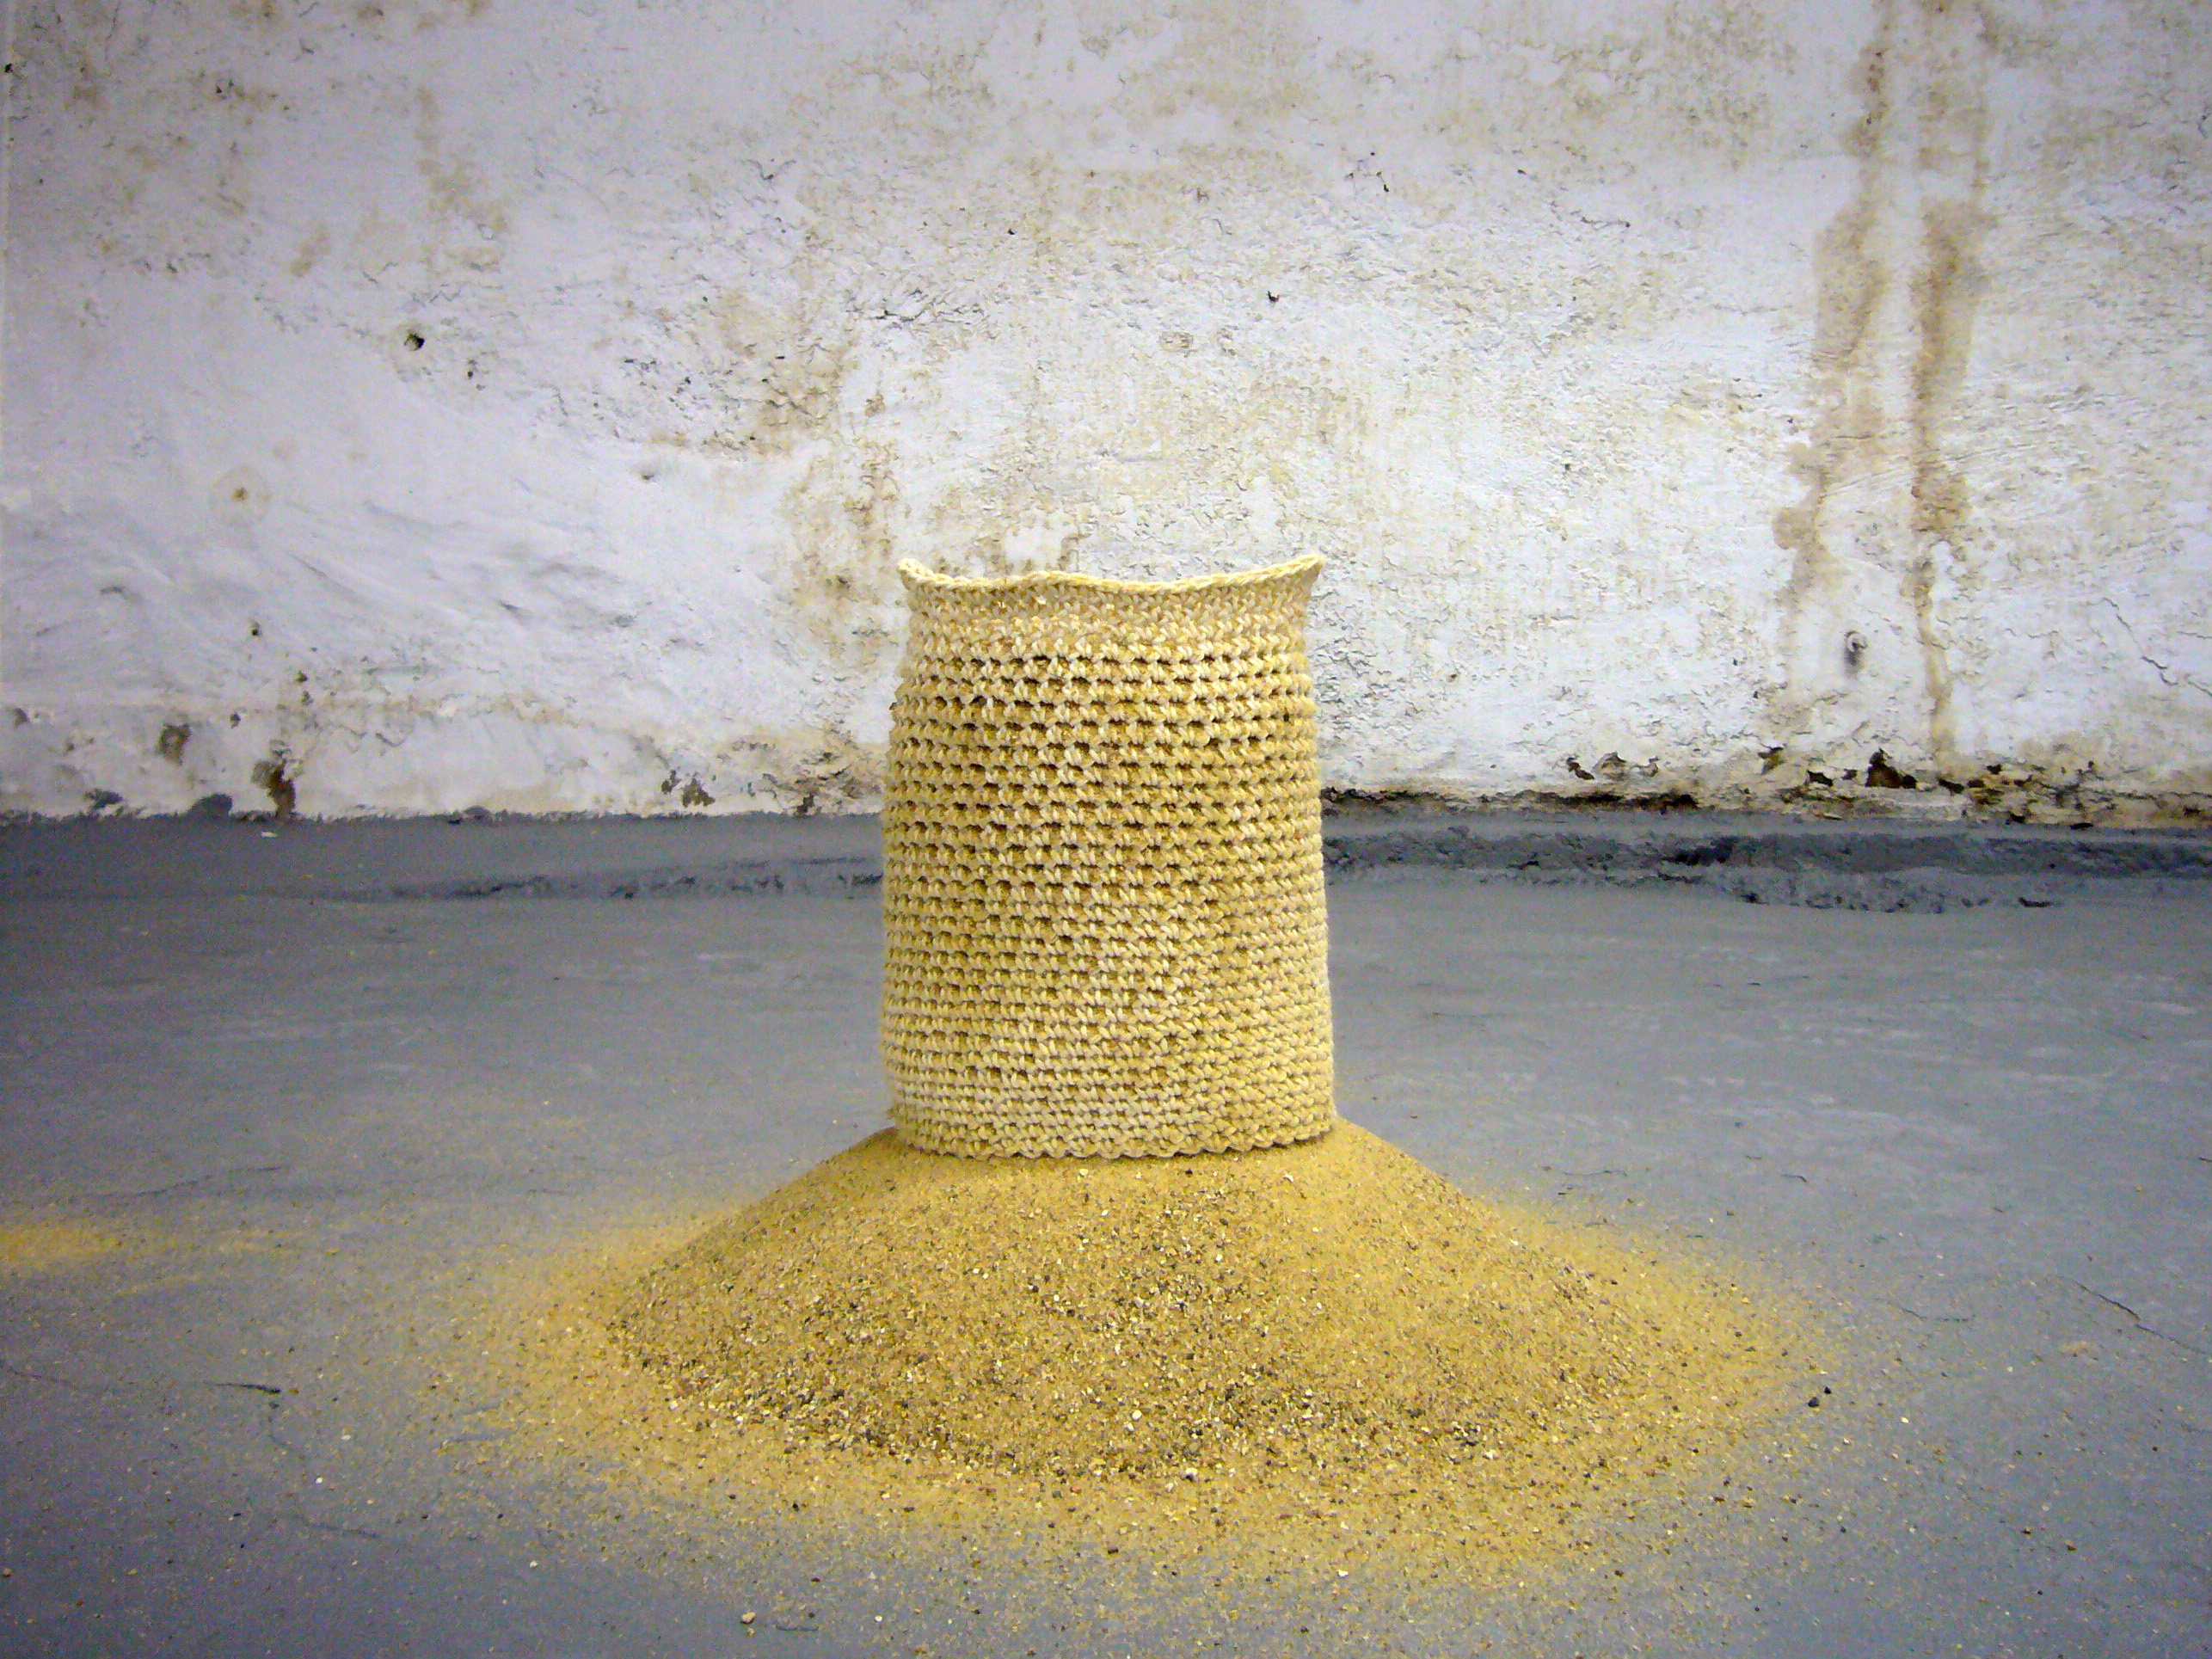 """Hisar Construction"" (cotton twine, sand) by Firat Erdim, Iowa State University assistant professor of architecture"